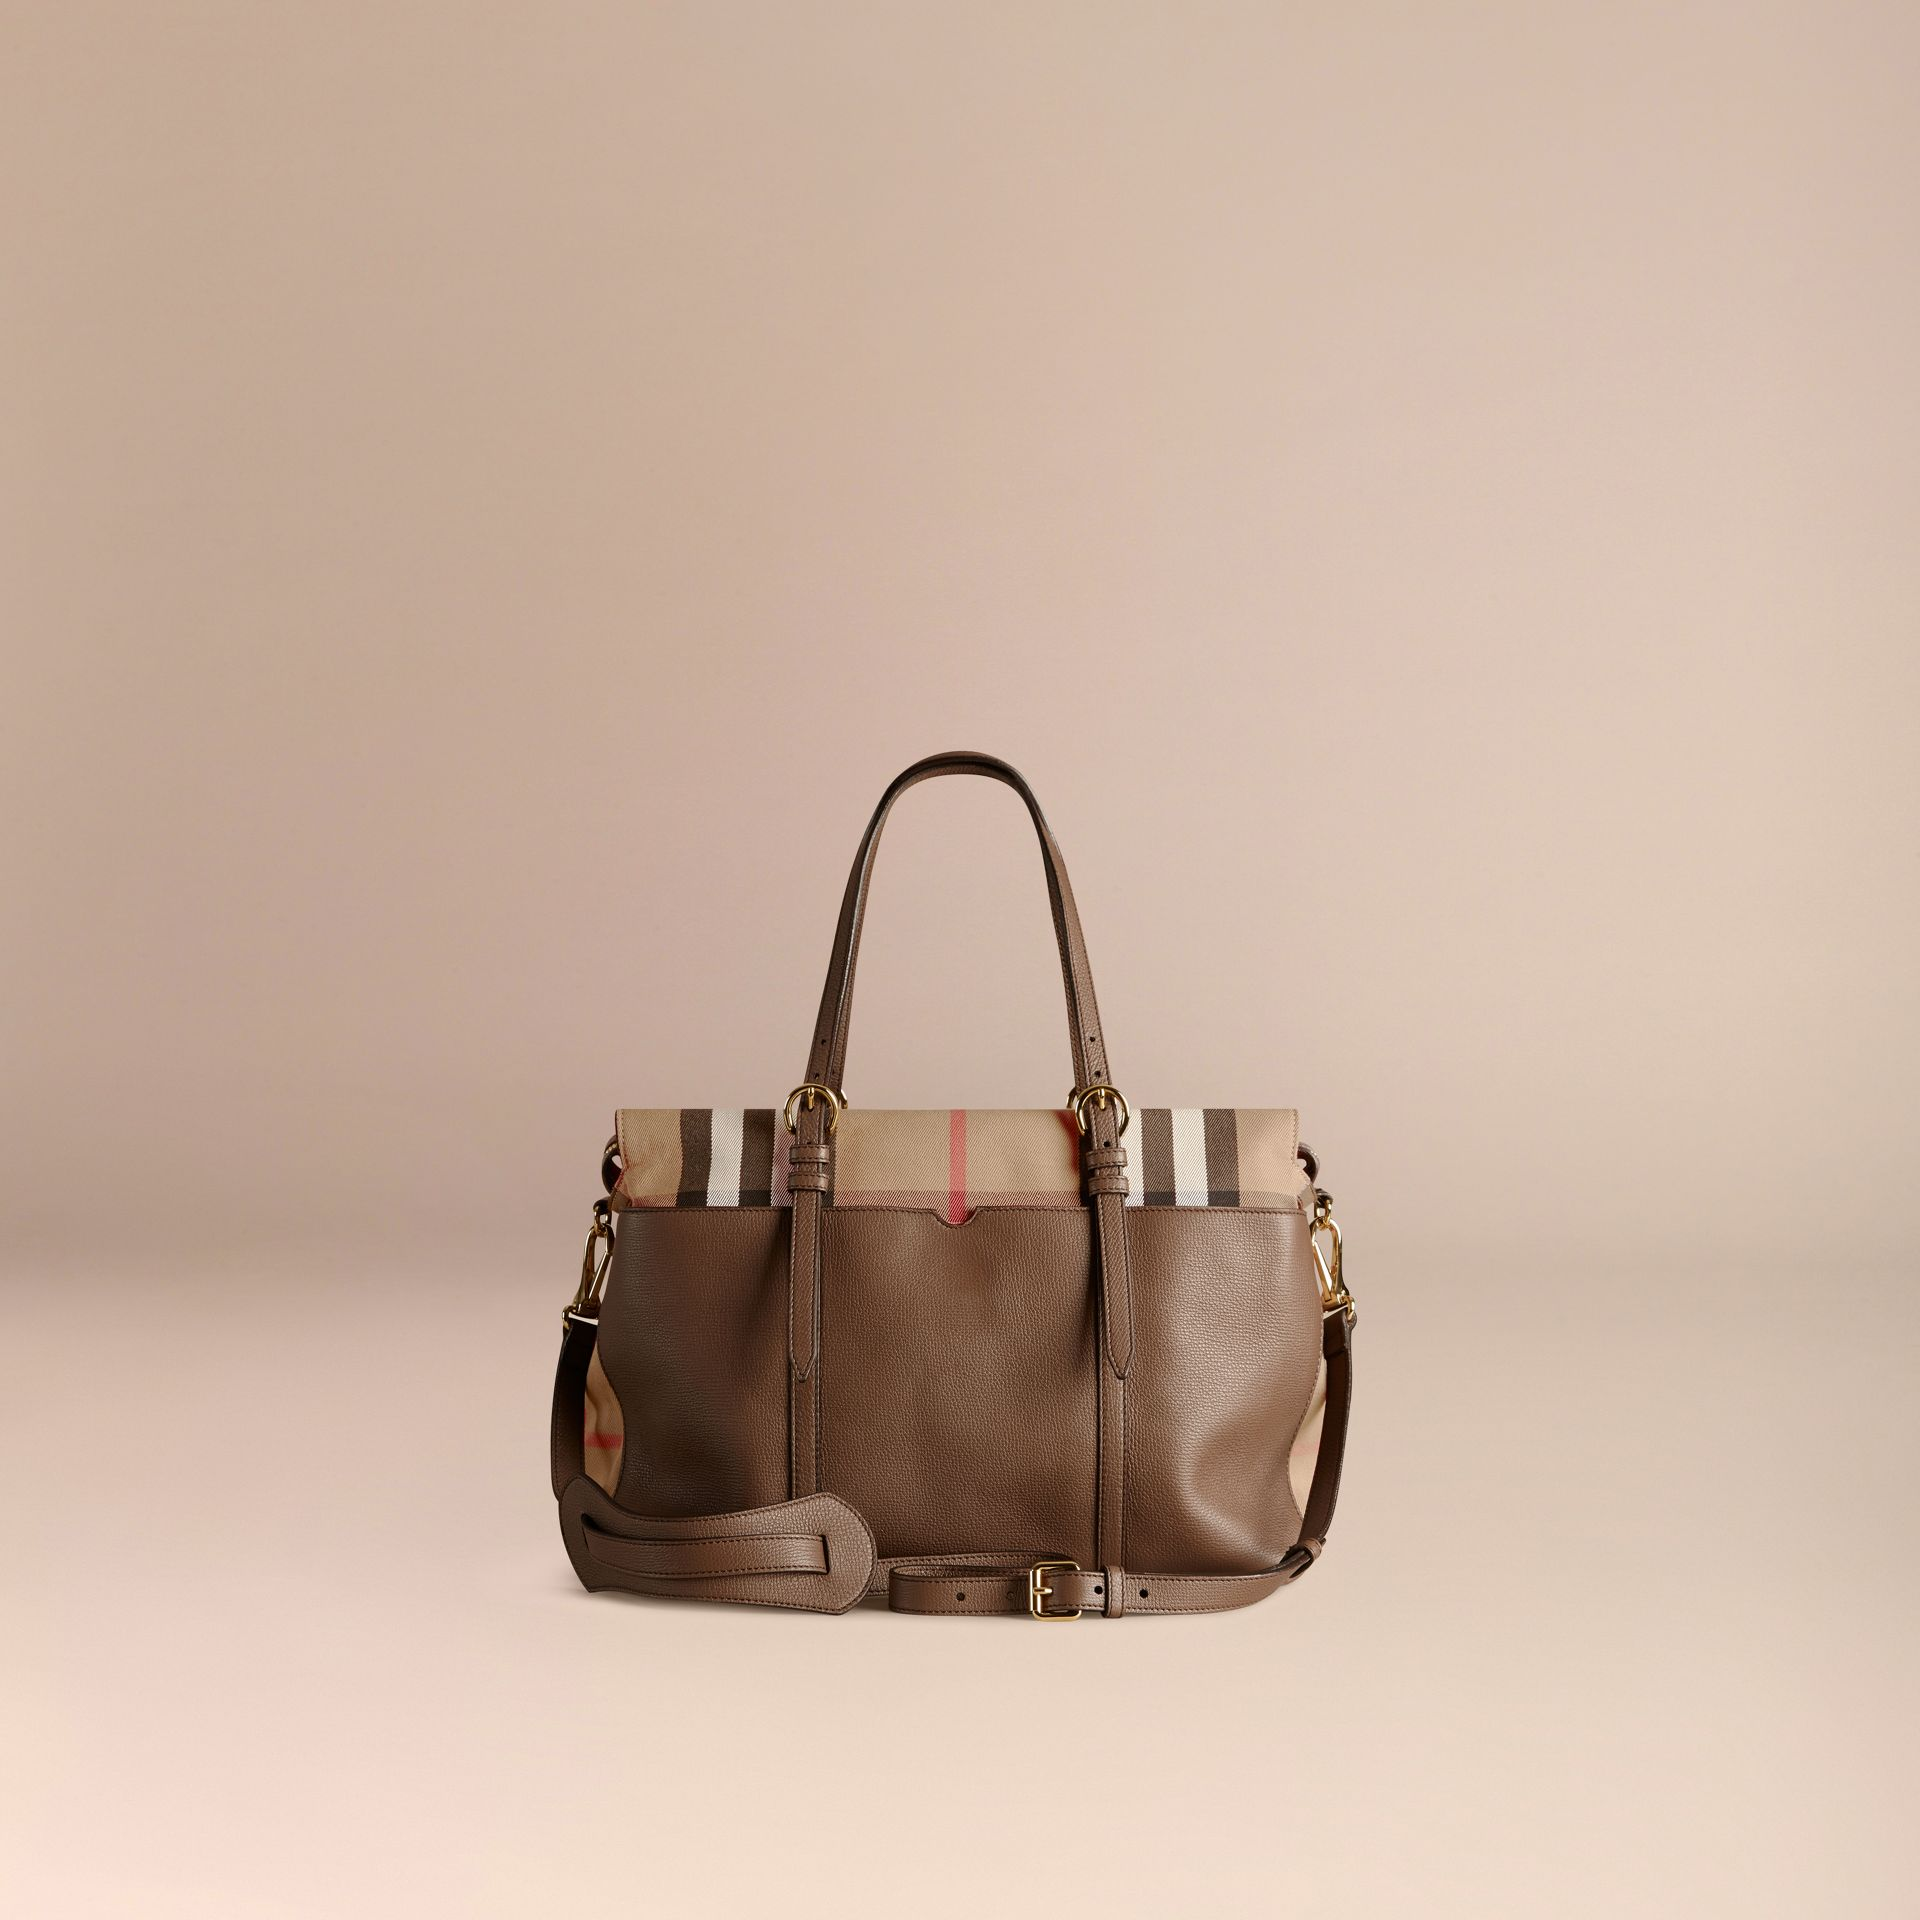 House Check and Leather Baby Changing Bag in Taupe Grey | Burberry Australia - gallery image 5